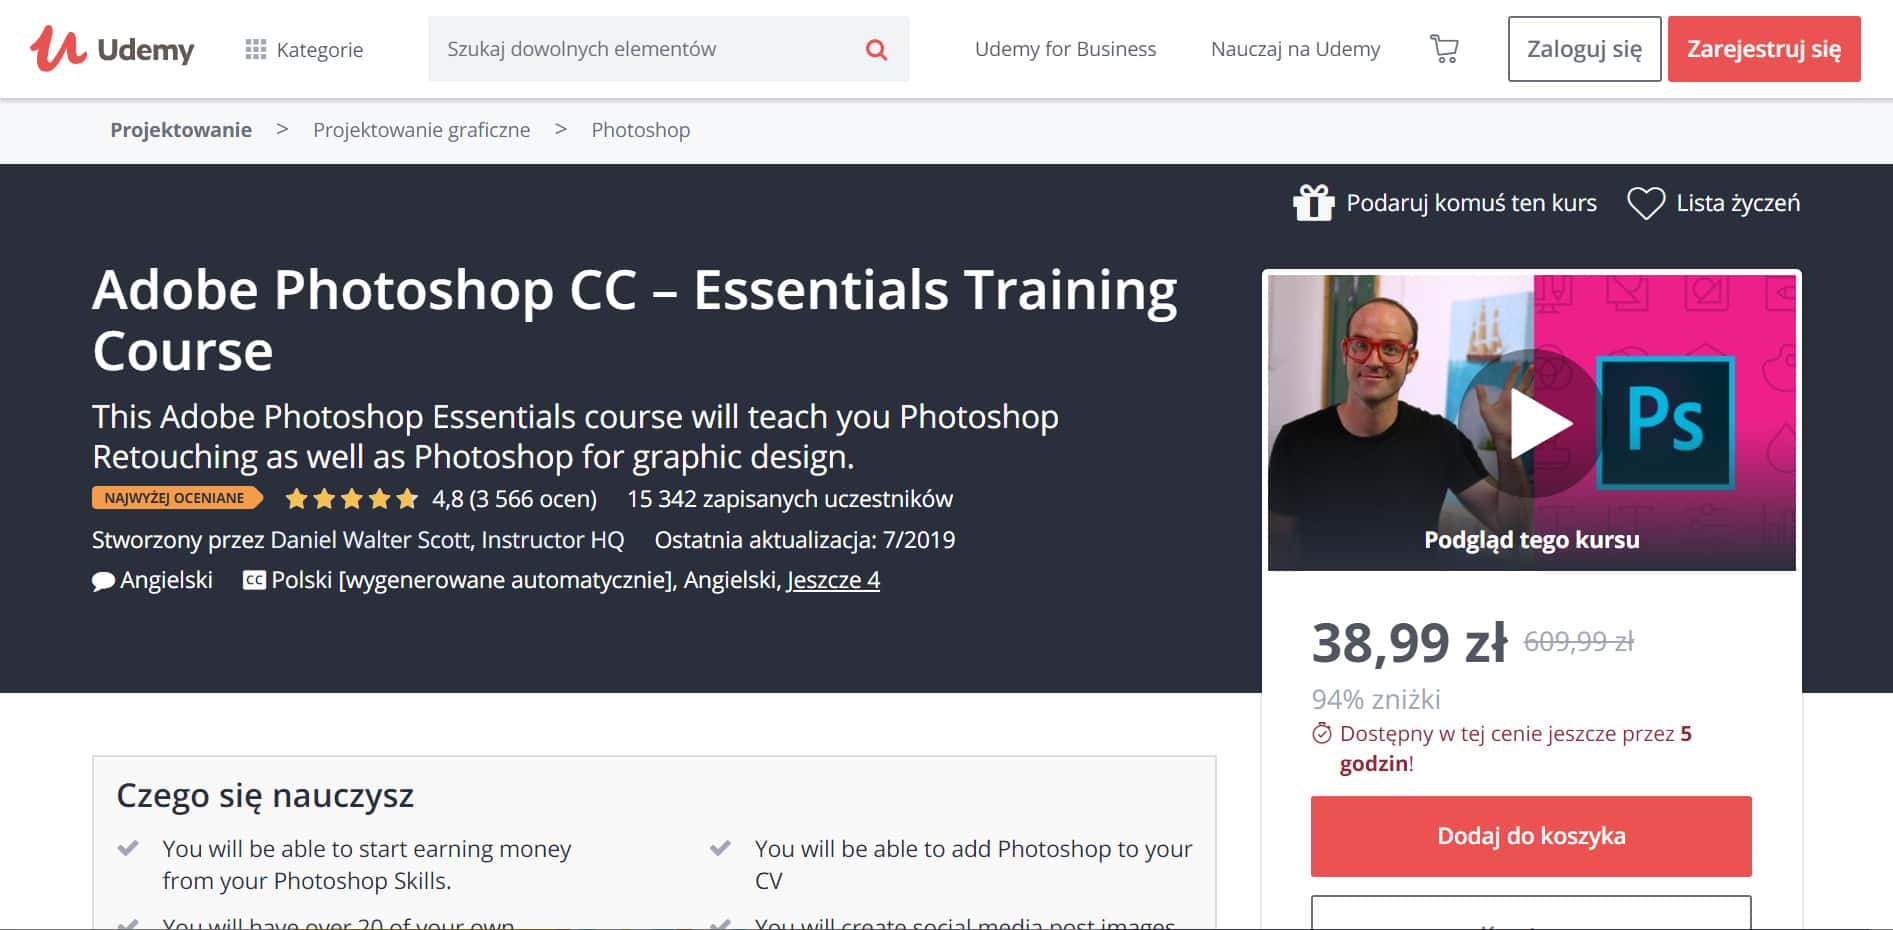 Udemy - Photoshop essentials training